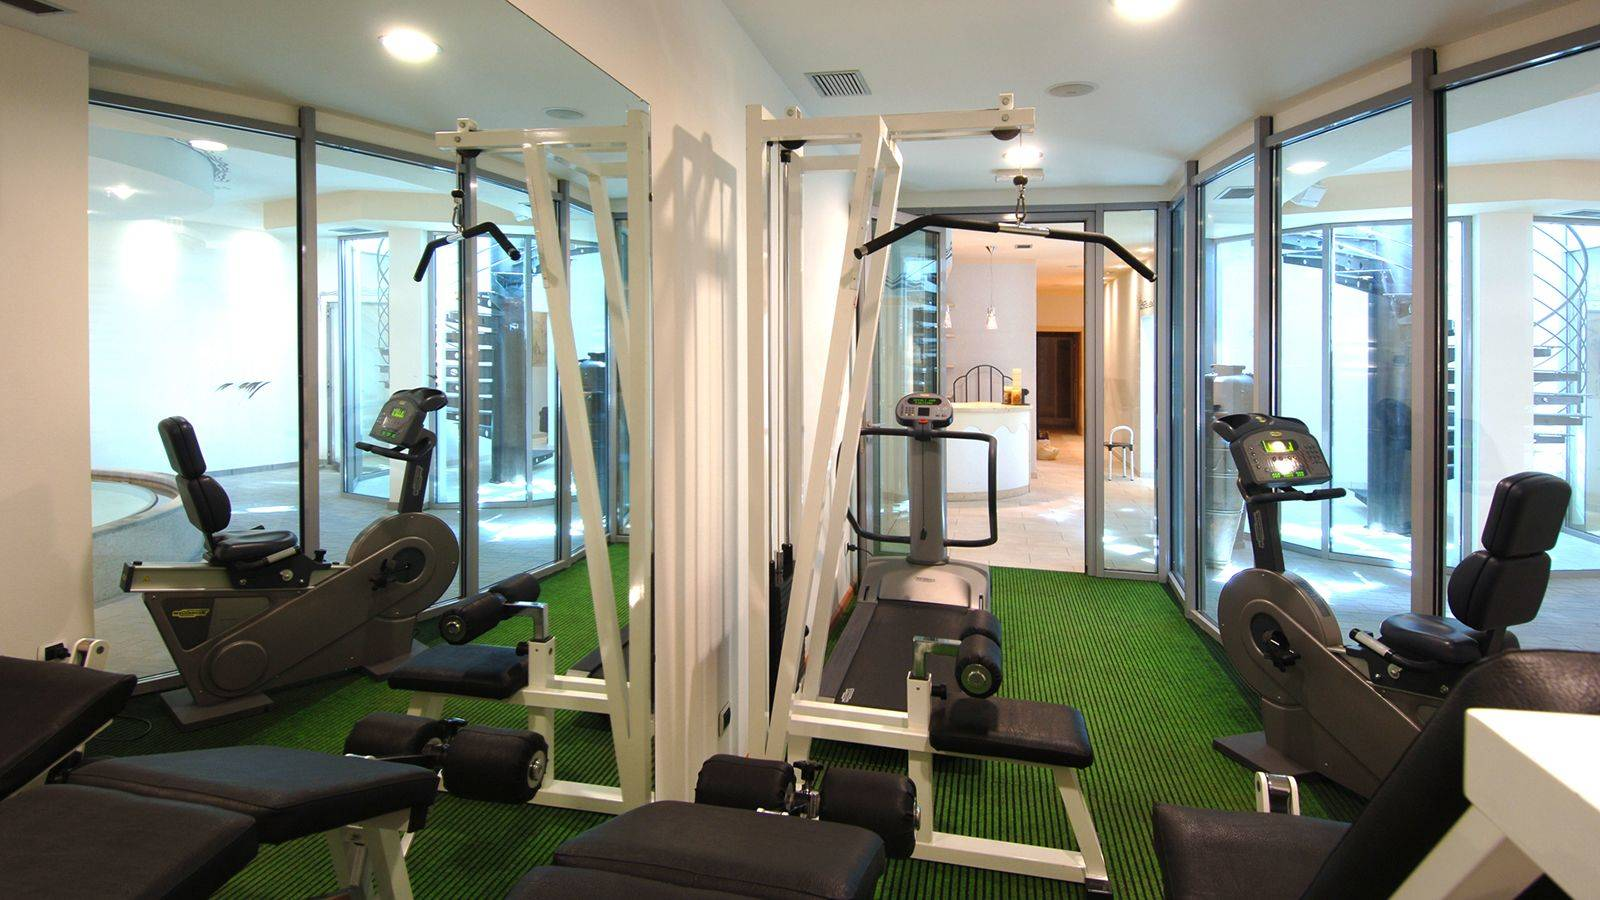 The gym of one of the hotels in Passo San Pellegrino